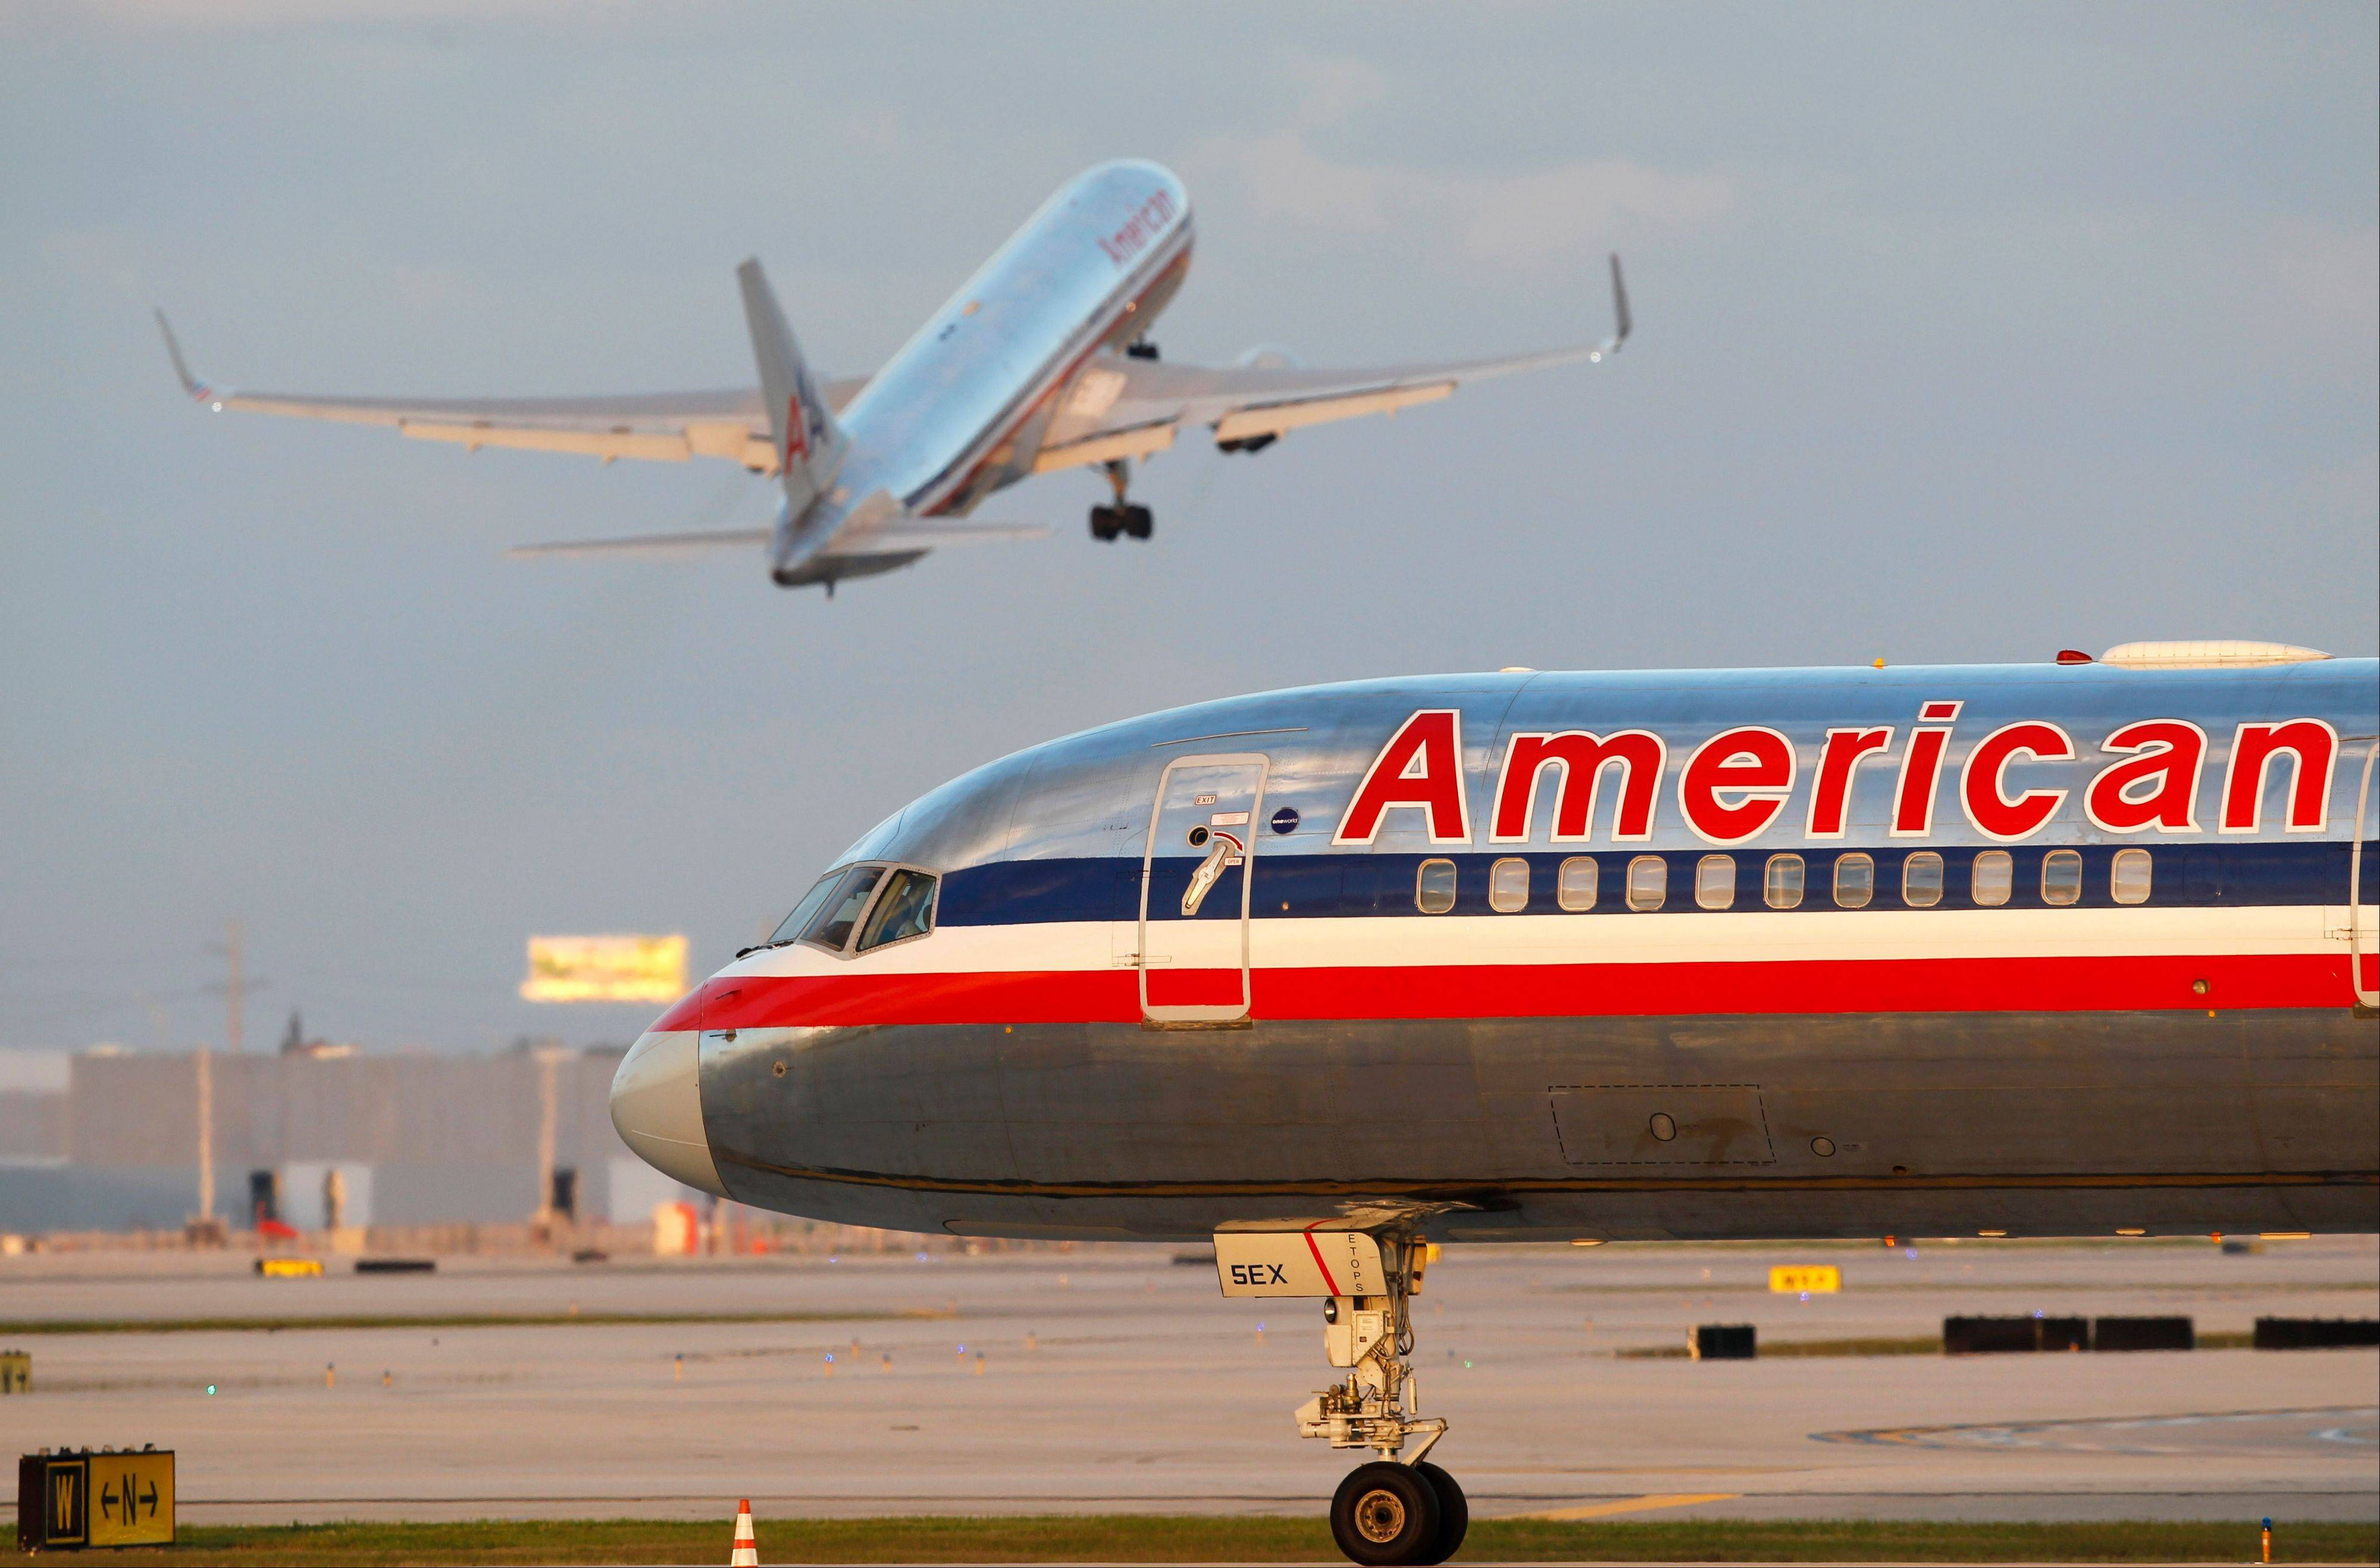 Associated PressAmerican Airlines parent company AMR says Wednesday, Oct. 17, 2012, it lost $238 million in the third-quarter on employee severance costs and other charges related to its bankruptcy. Without those charges, the Fort Worth, Texas, company would have posted an operating profit as it paid less for fuel and benefited from a partnership that boosted traffic overseas.